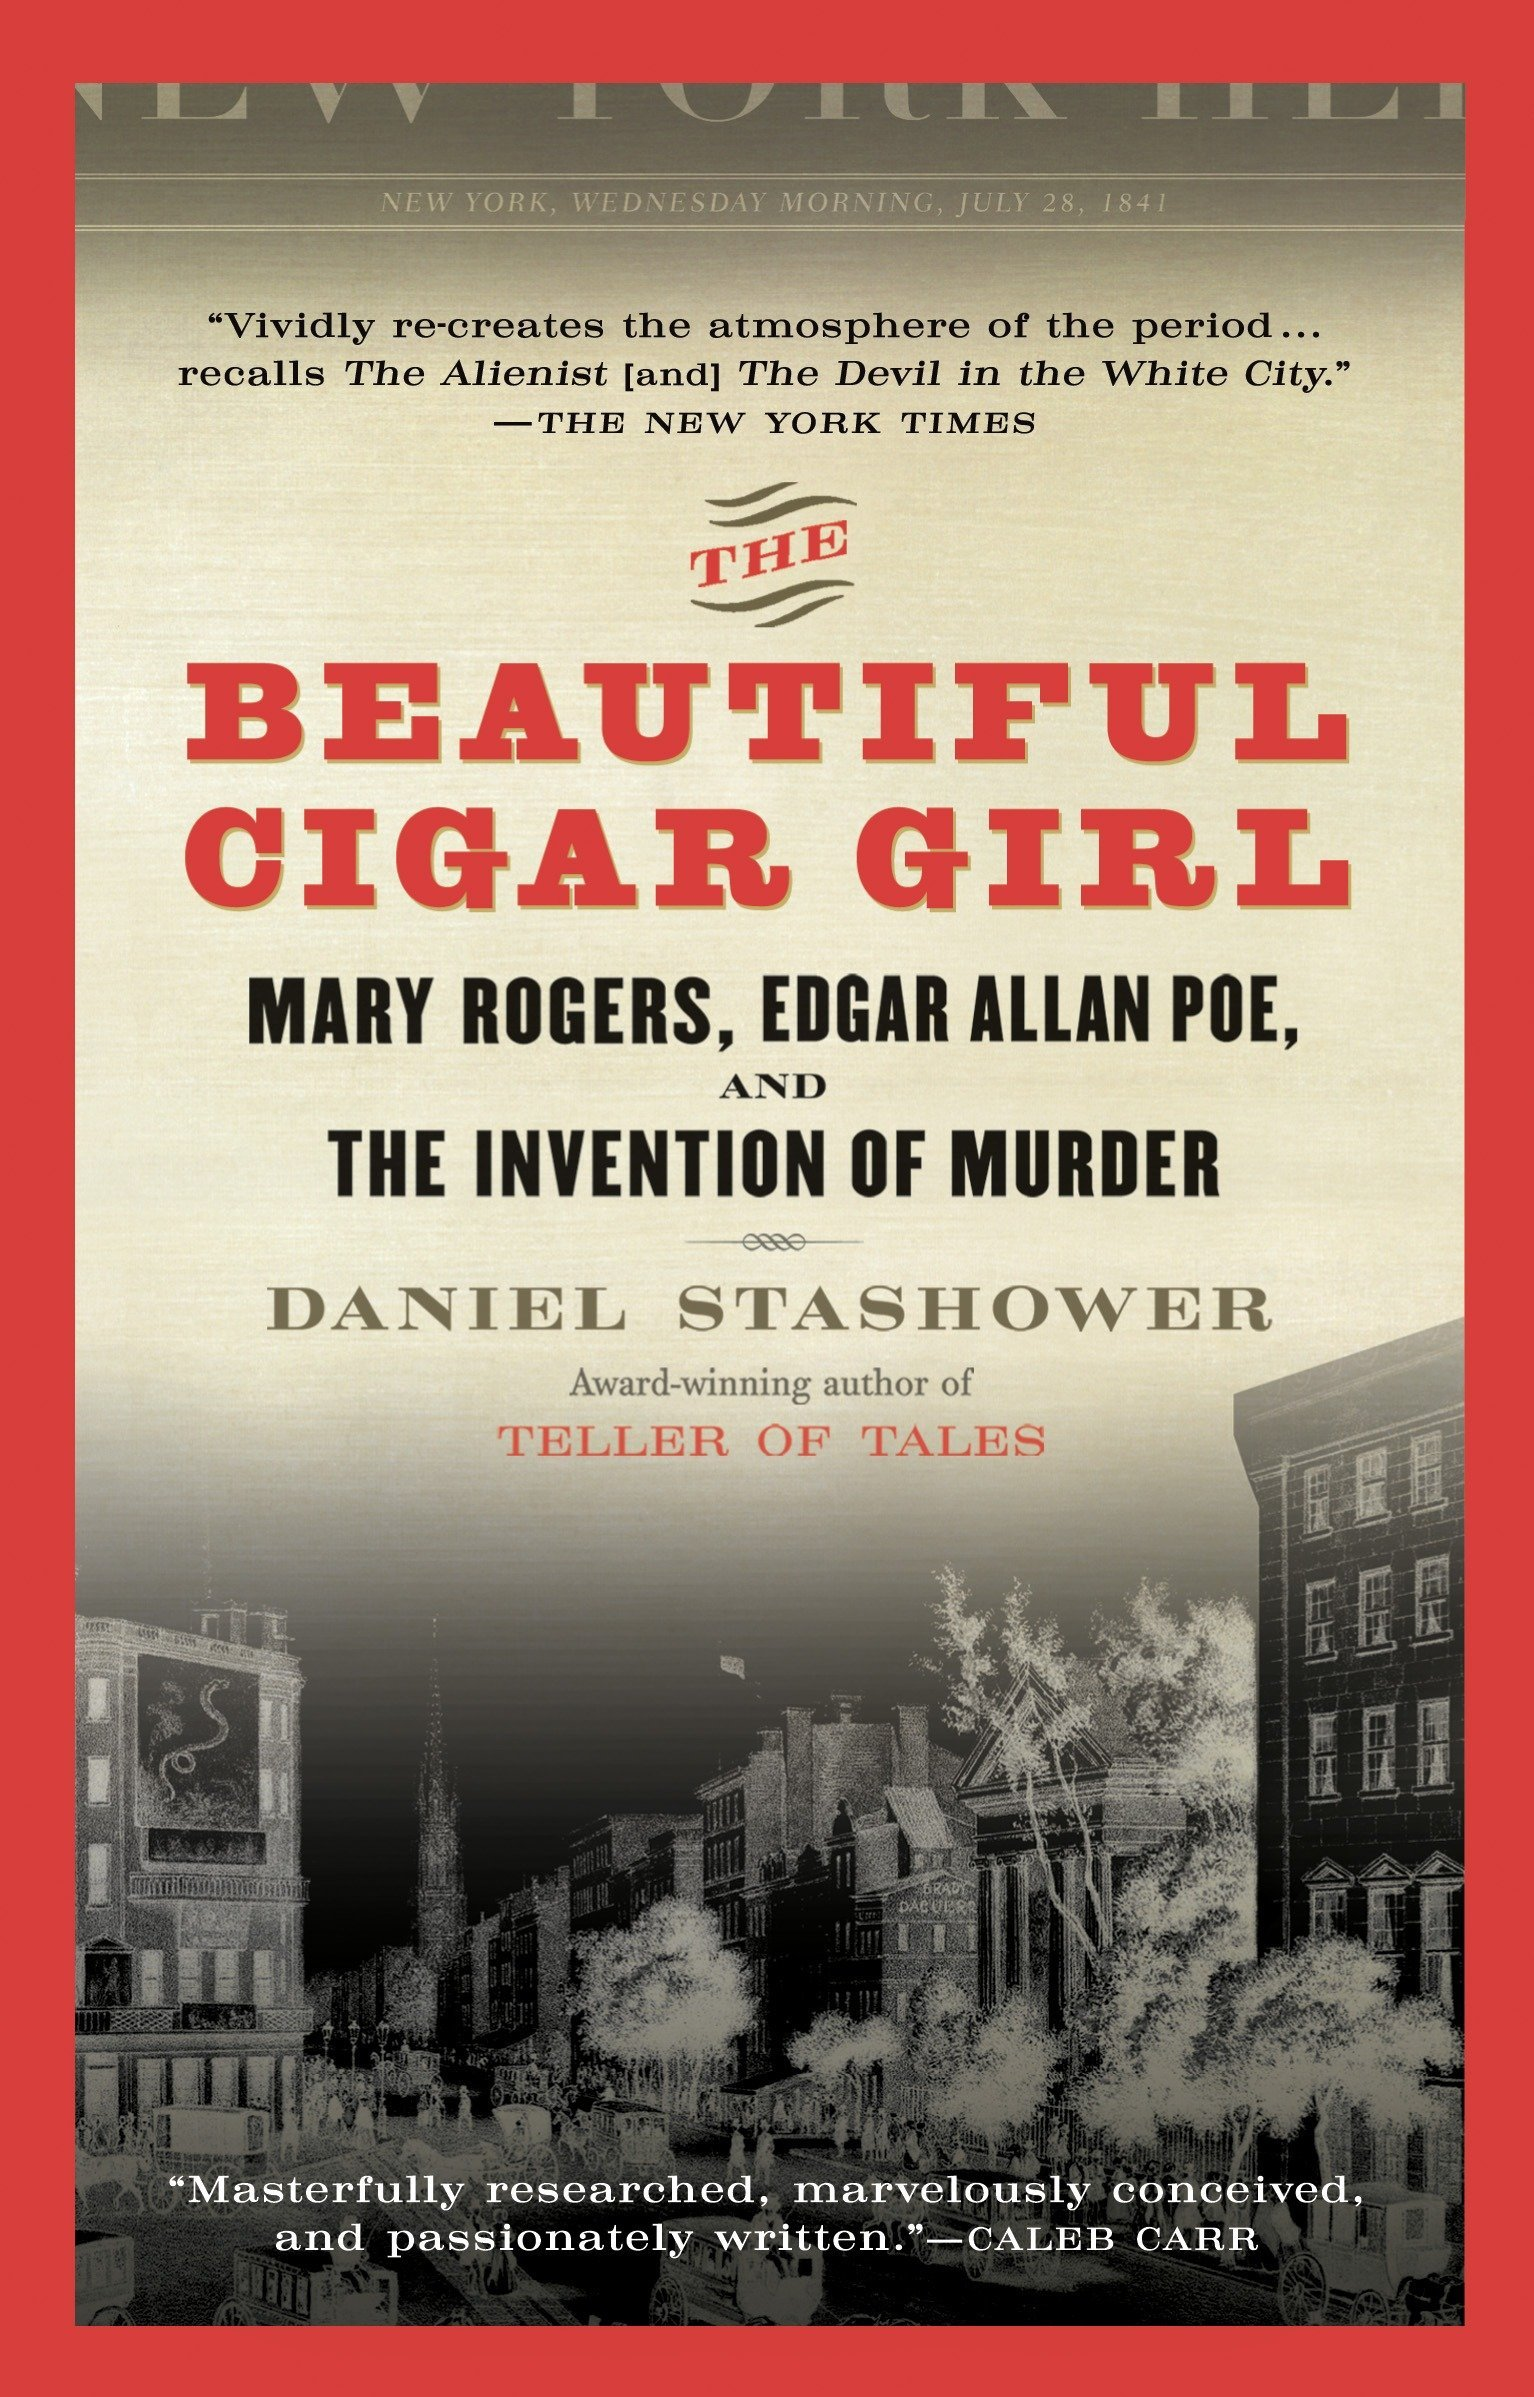 Amazon.com: The Beautiful Cigar Girl: Mary Rogers, Edgar Allan Poe, and the  Invention of Murder (9780425217825): Daniel Stashower: Books